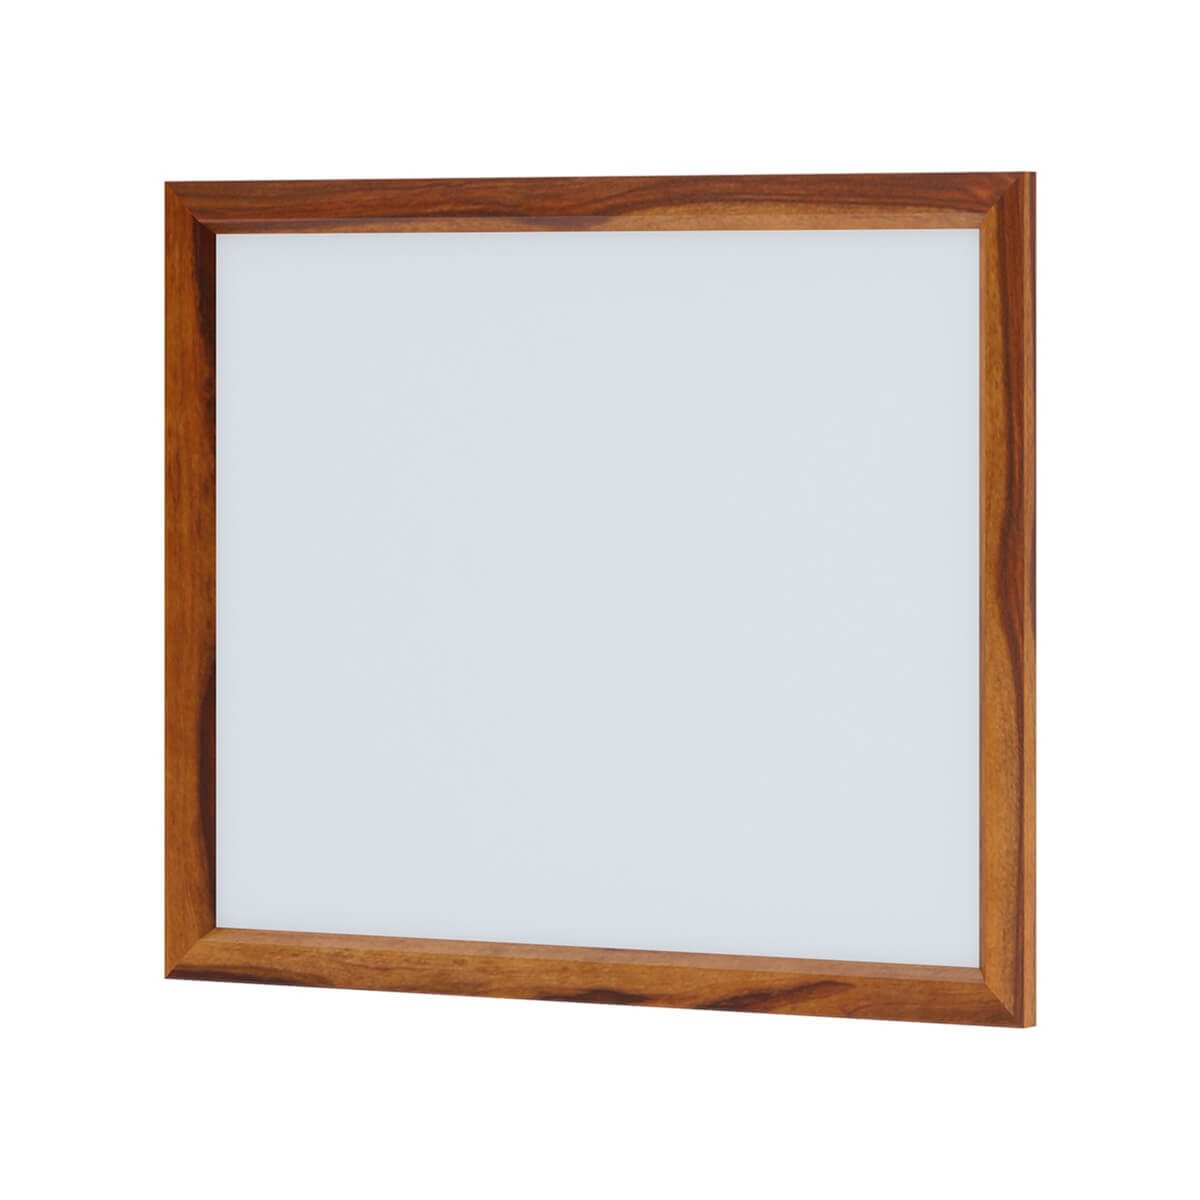 San Francisco Rustic Solid Wood Mirror Frame